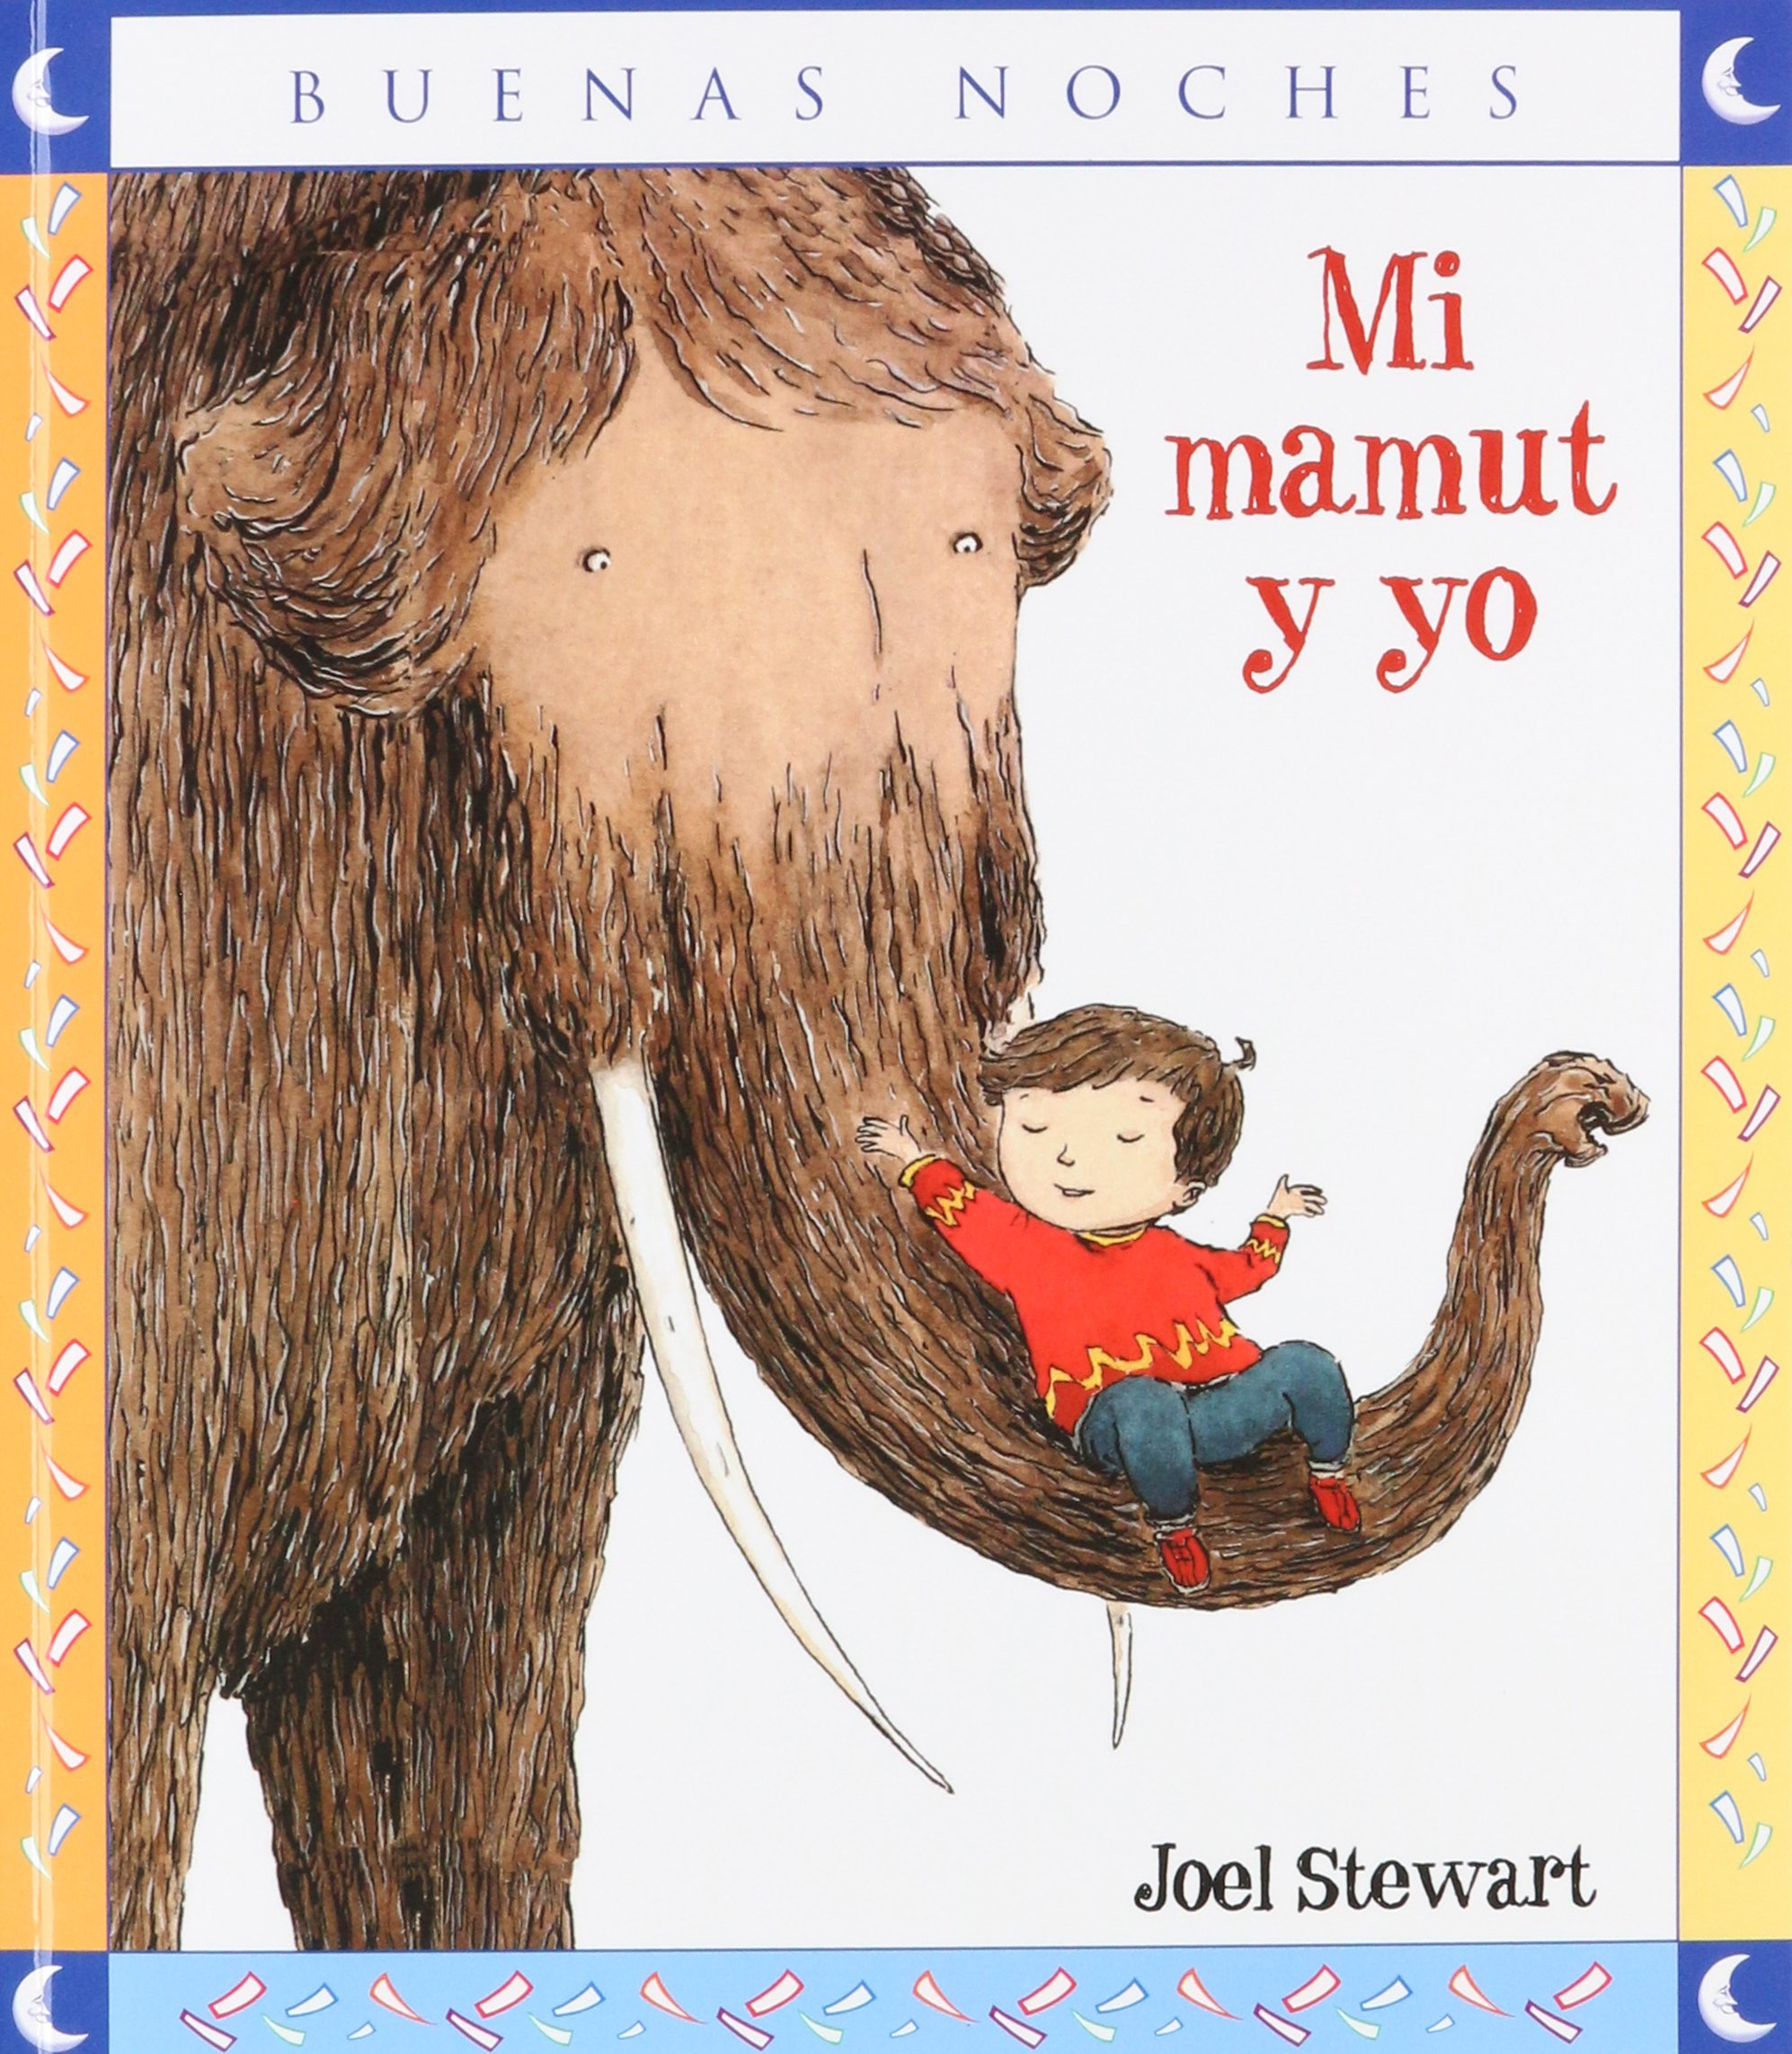 Mi mamut y yo / My mammoth and I (Spanish Edition): Joel Stewart: 9789584500649: Amazon.com: Books